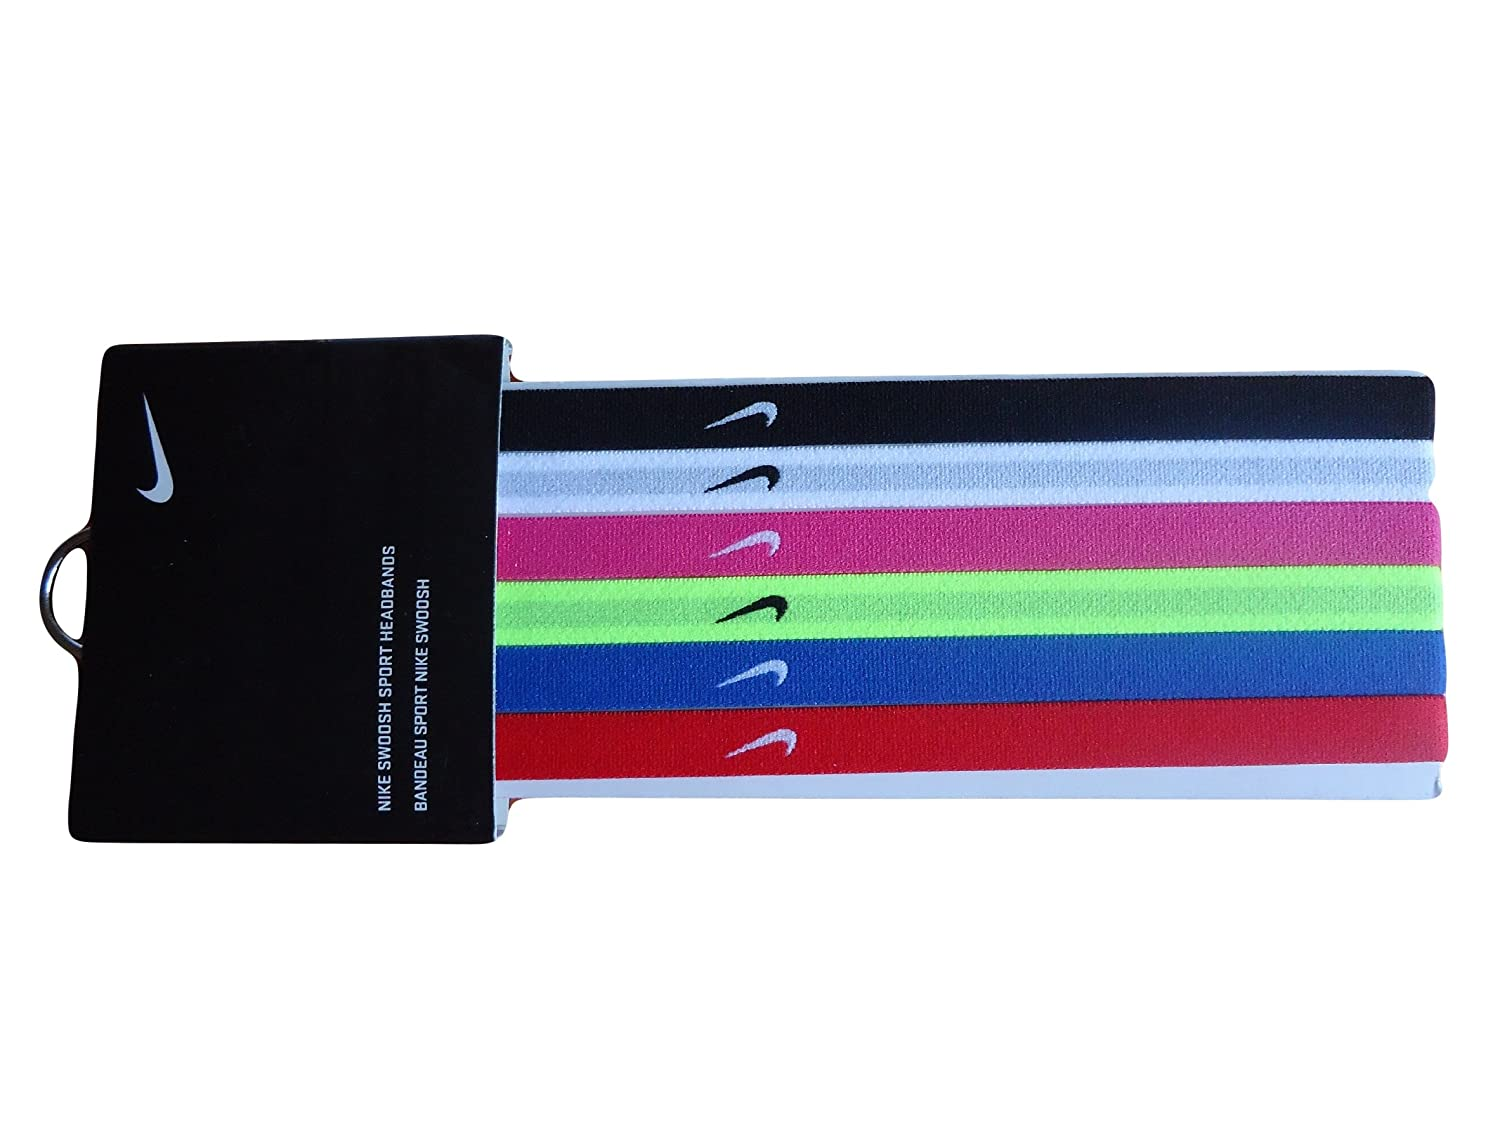 Nike Sport Bands Headband Hairband Multicolours 6 Pack Football Tennis a04ef02231d